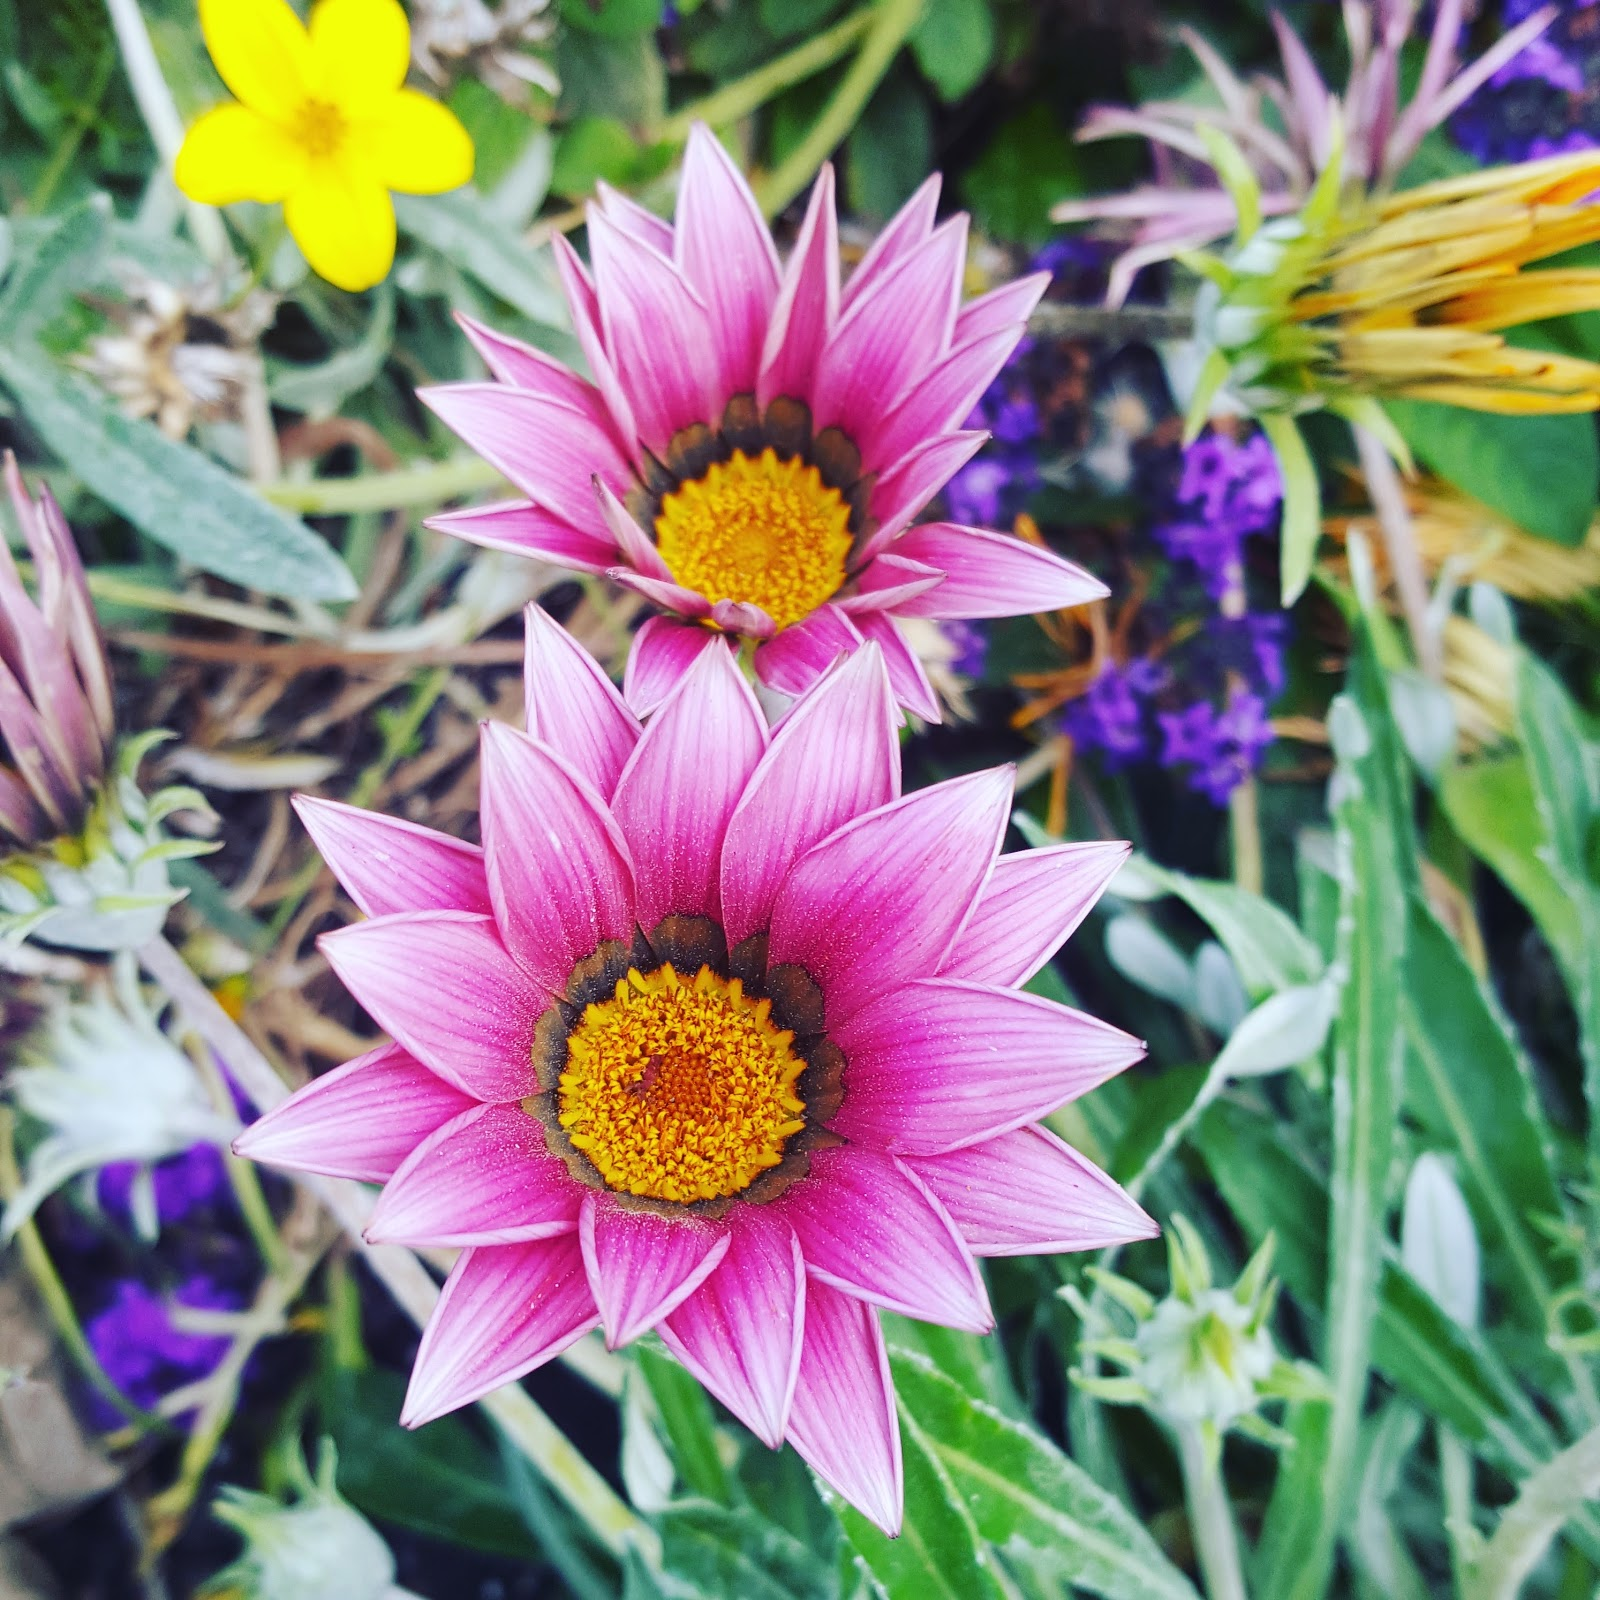 Late Summer Flowers Photo by @clairejustineo